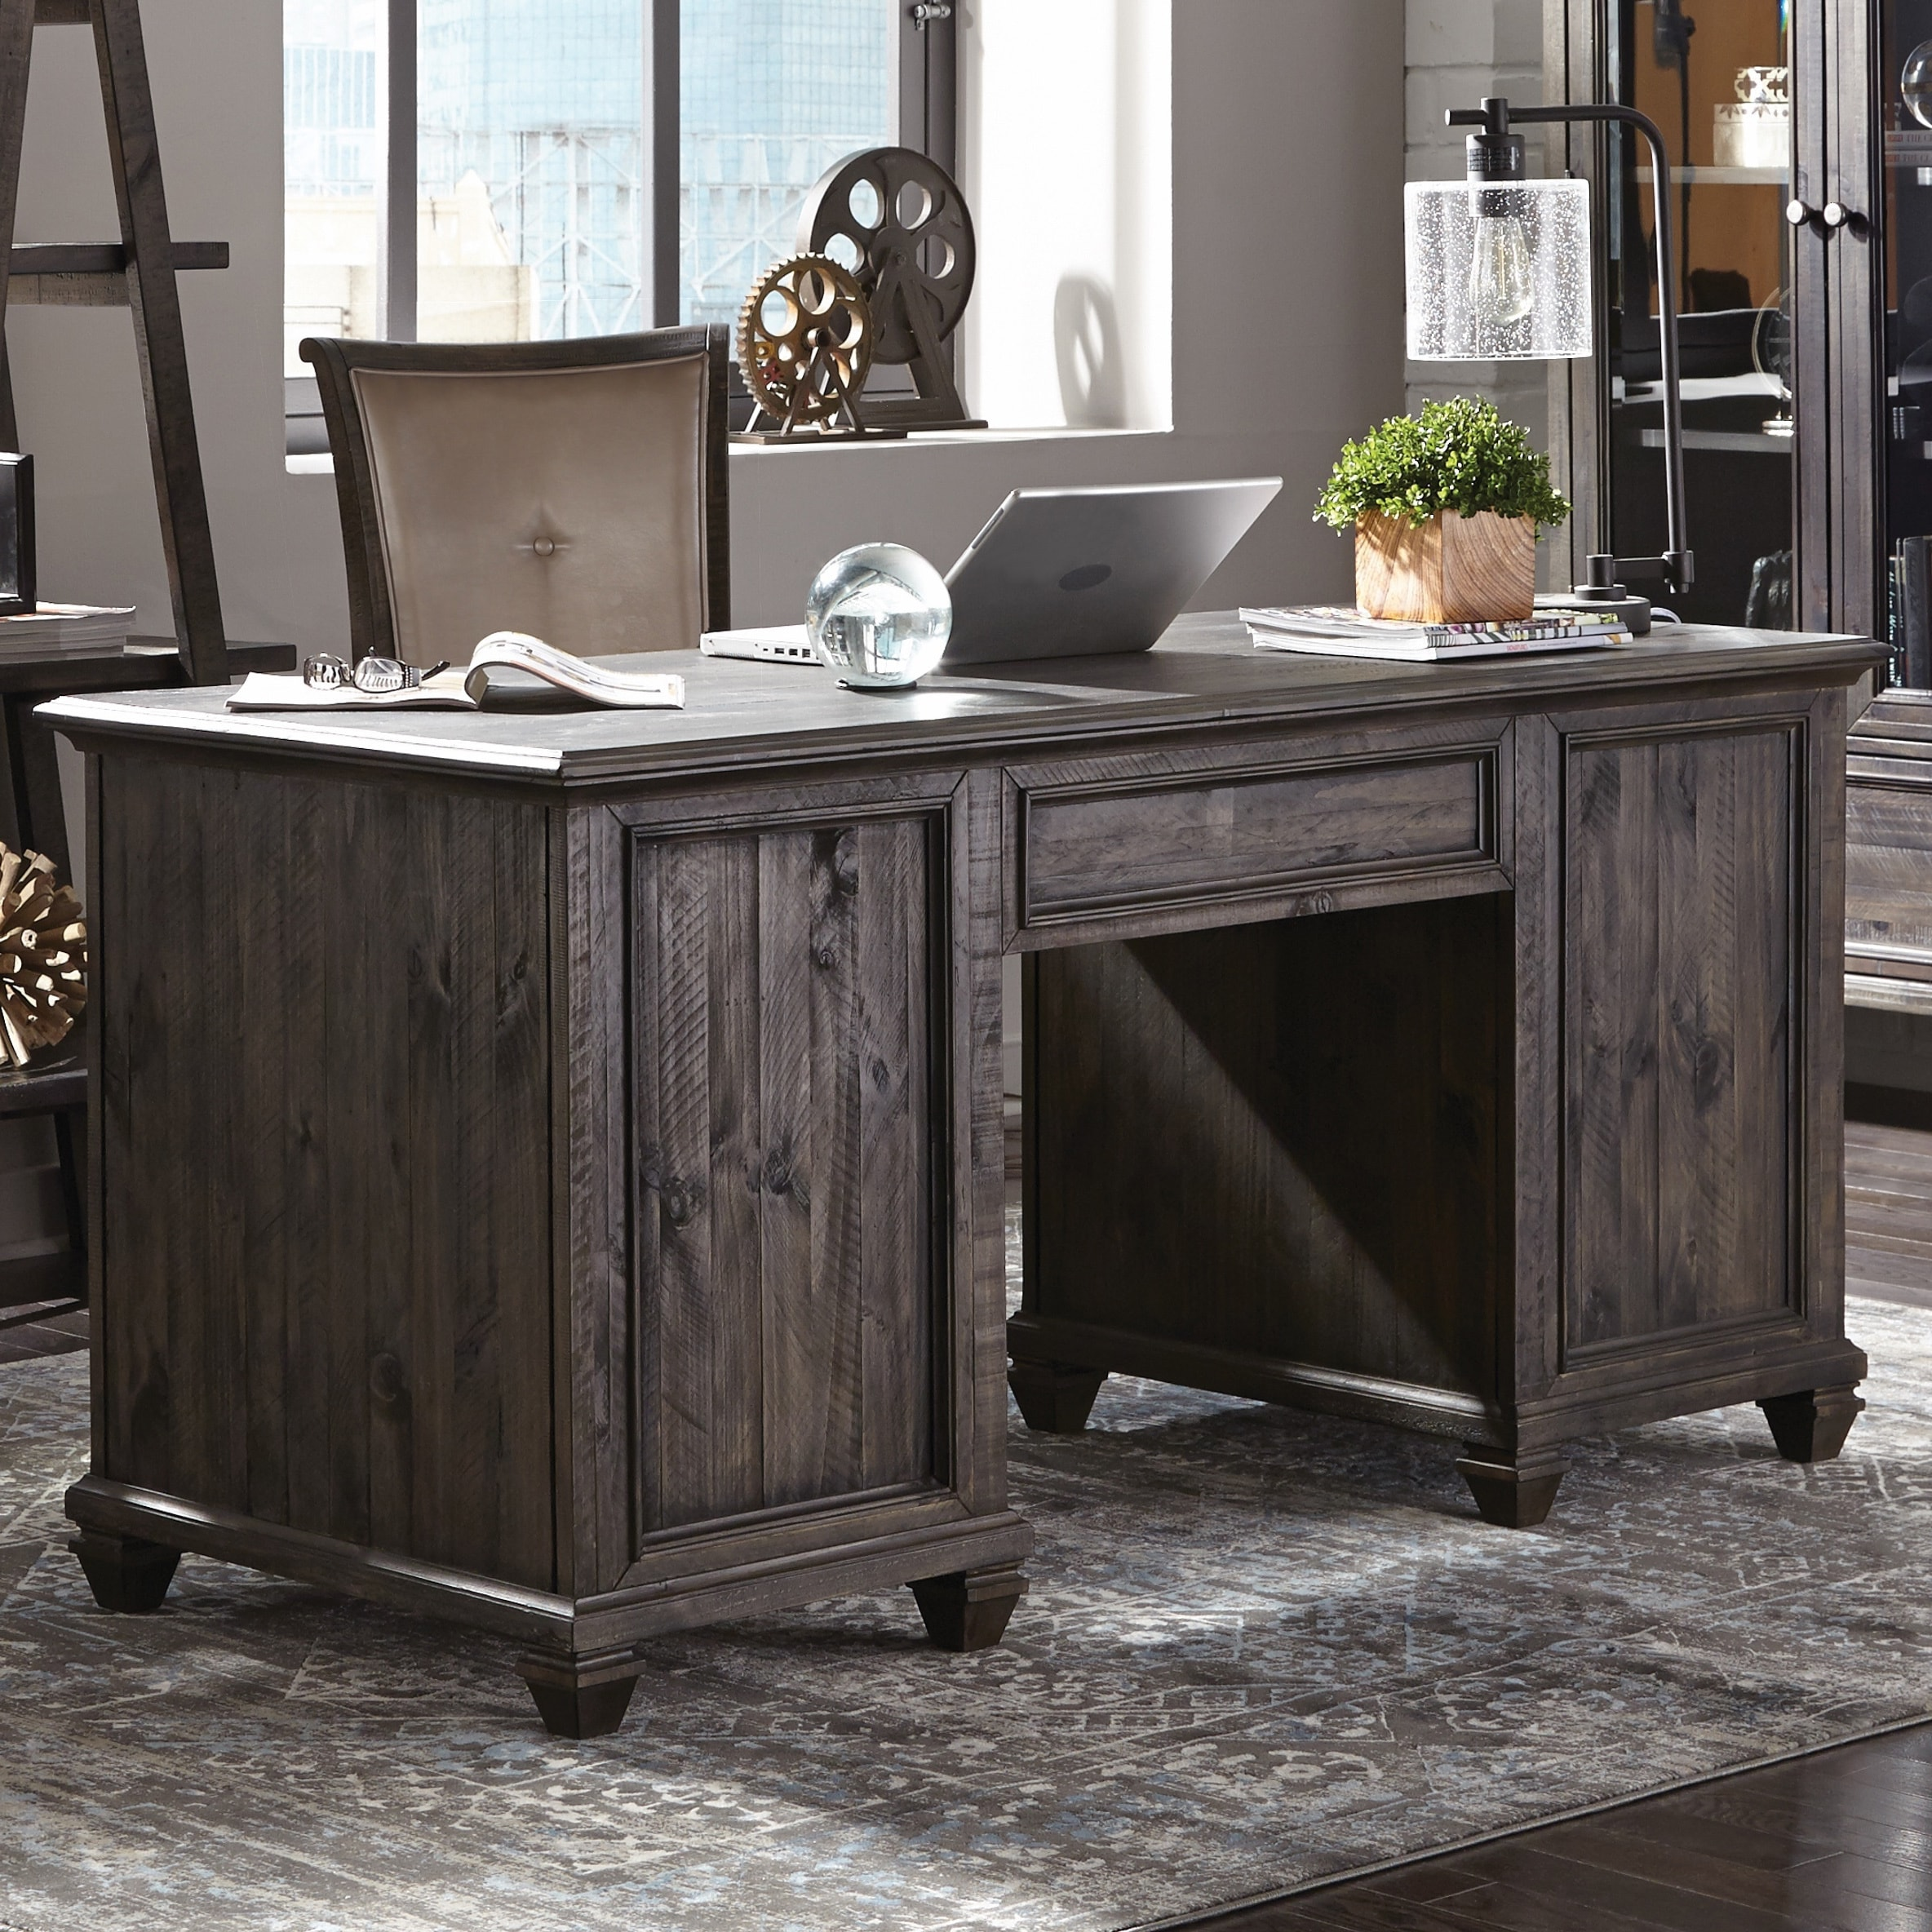 Desks With Drawers Buy Rustic Desks Computer Tables Online At Overstock Our Best